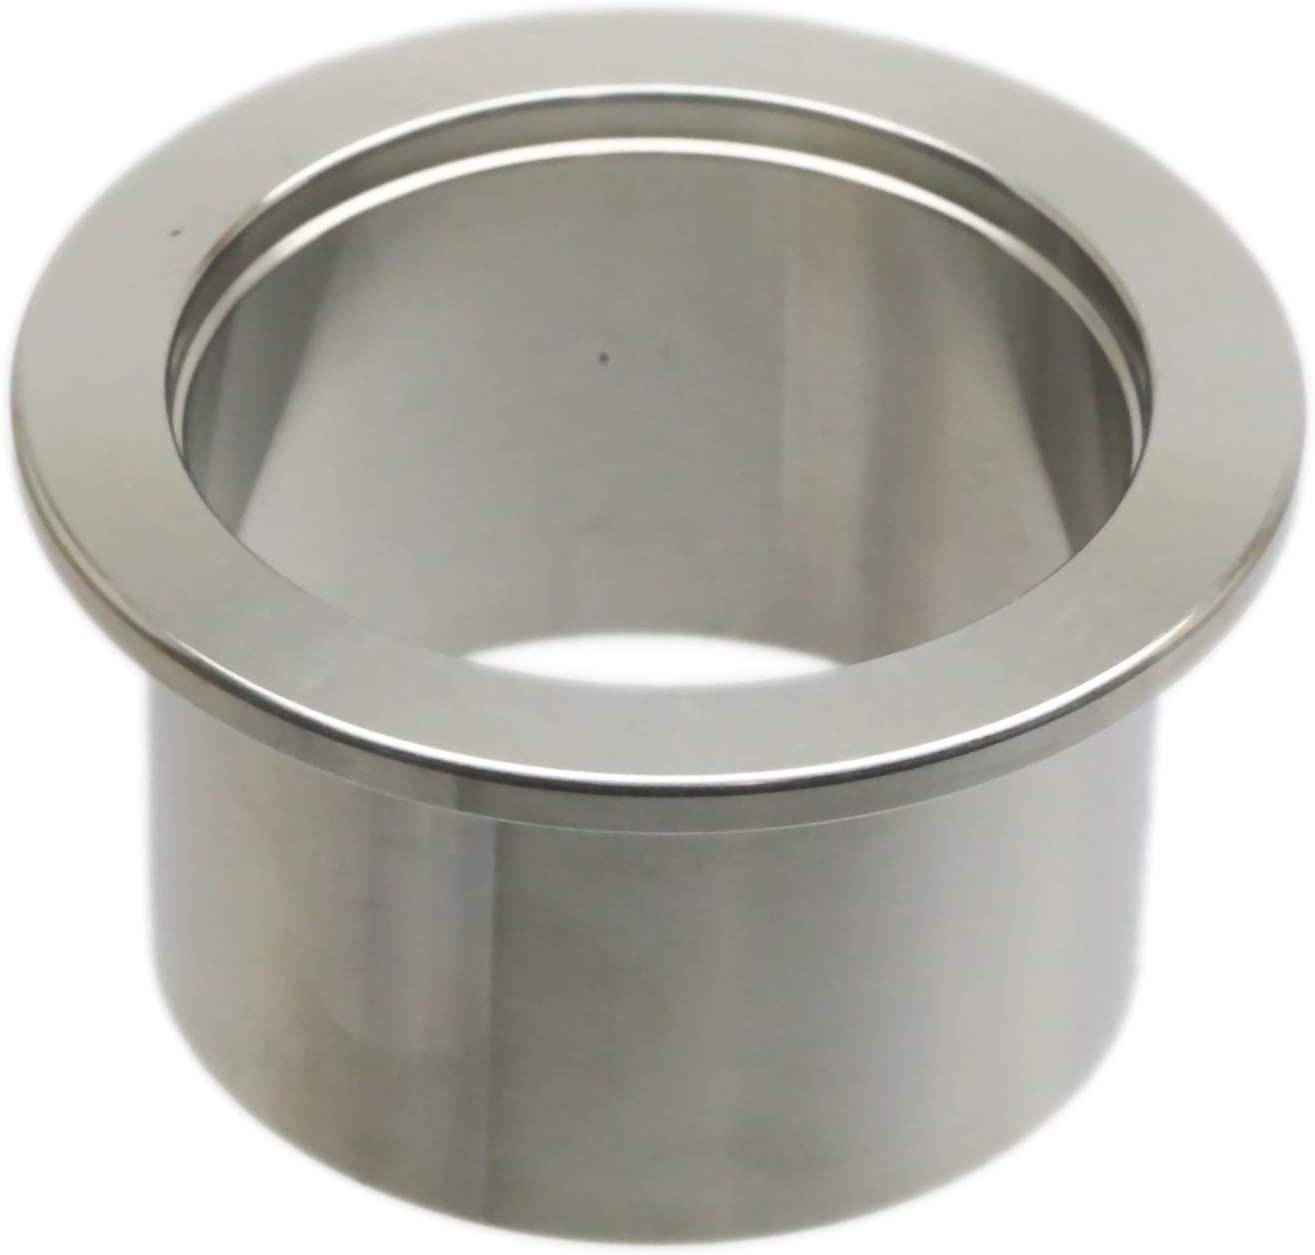 Length 30mm Stainless Steel 304 Connection Fange ISO-KF40 NW//KF-40 Vacuum Weld Flange Socket Fitting